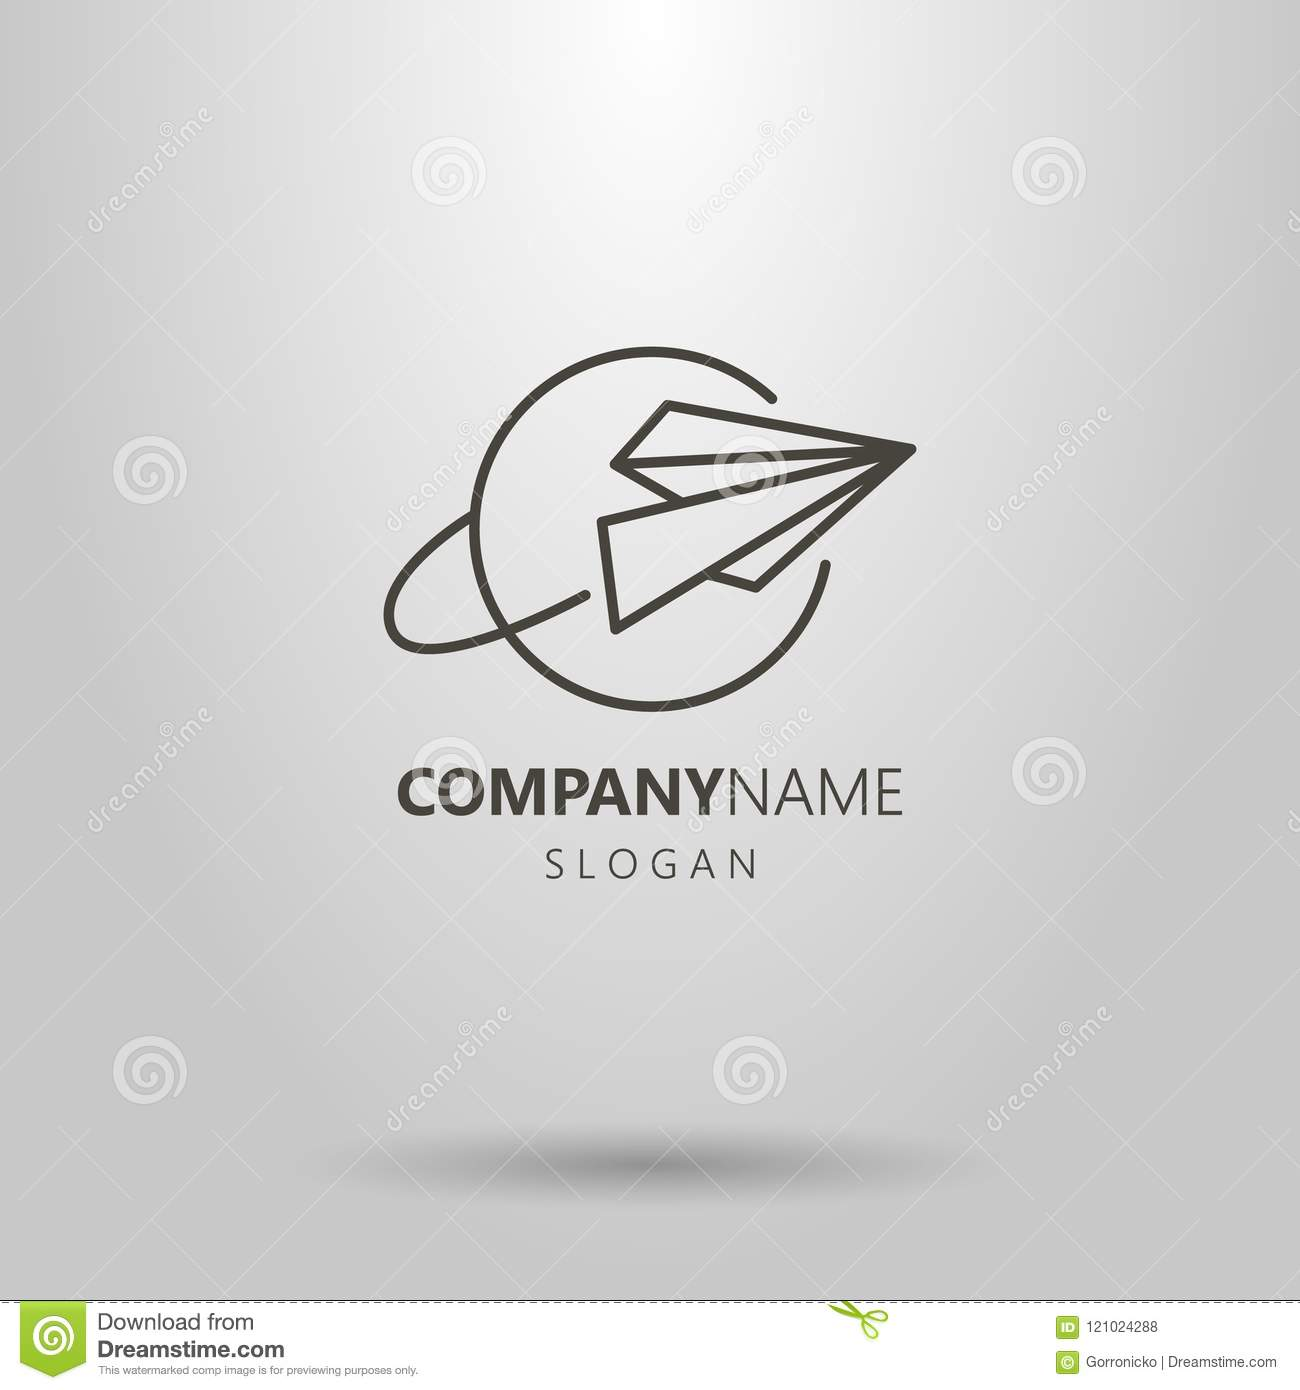 Simple vector line art logo of paper airplane and planet